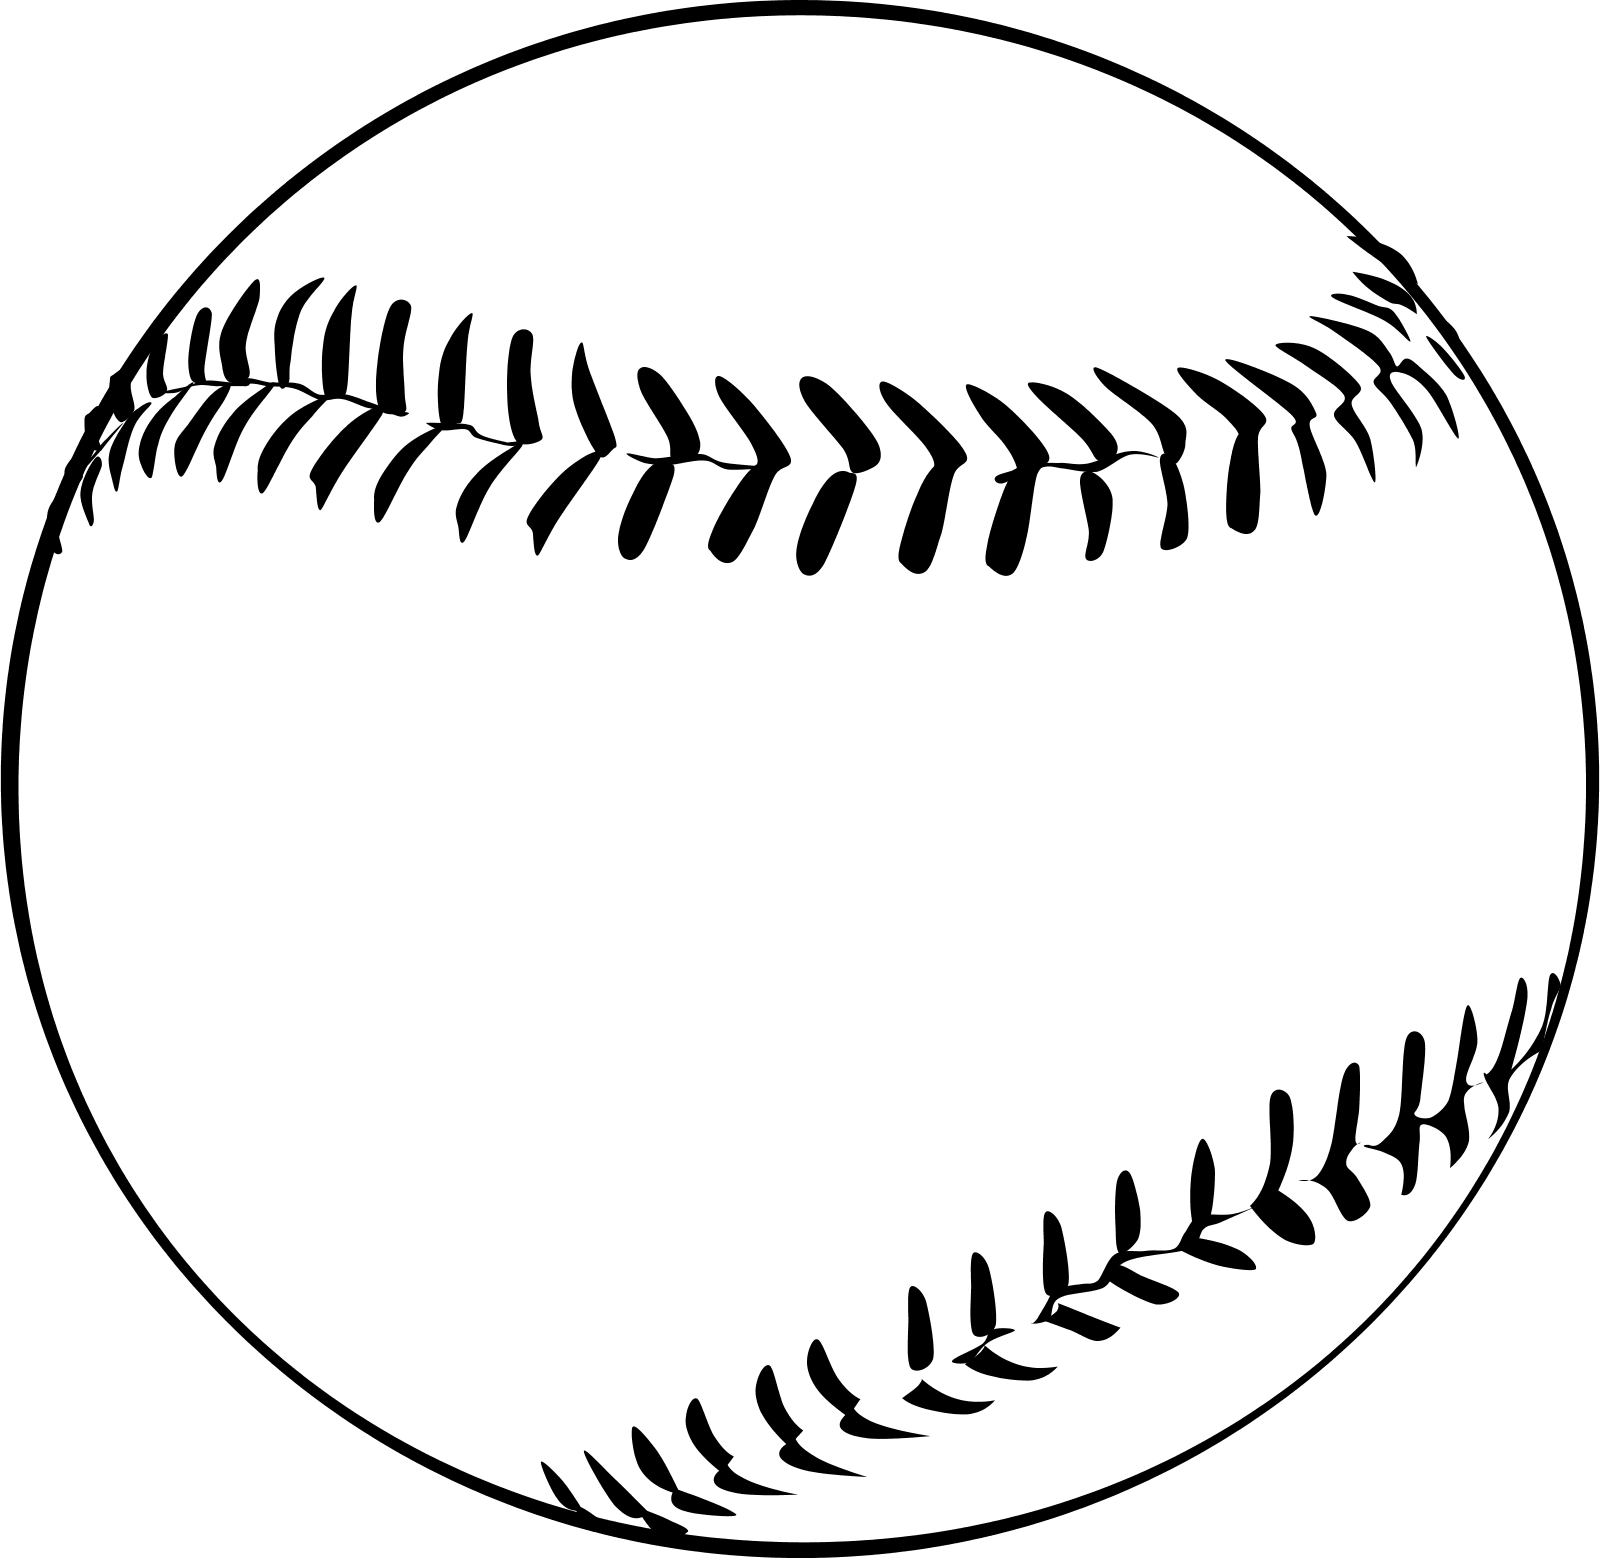 Clip Art Baseball Clipart Black And White baseball clipart black and white panda free images